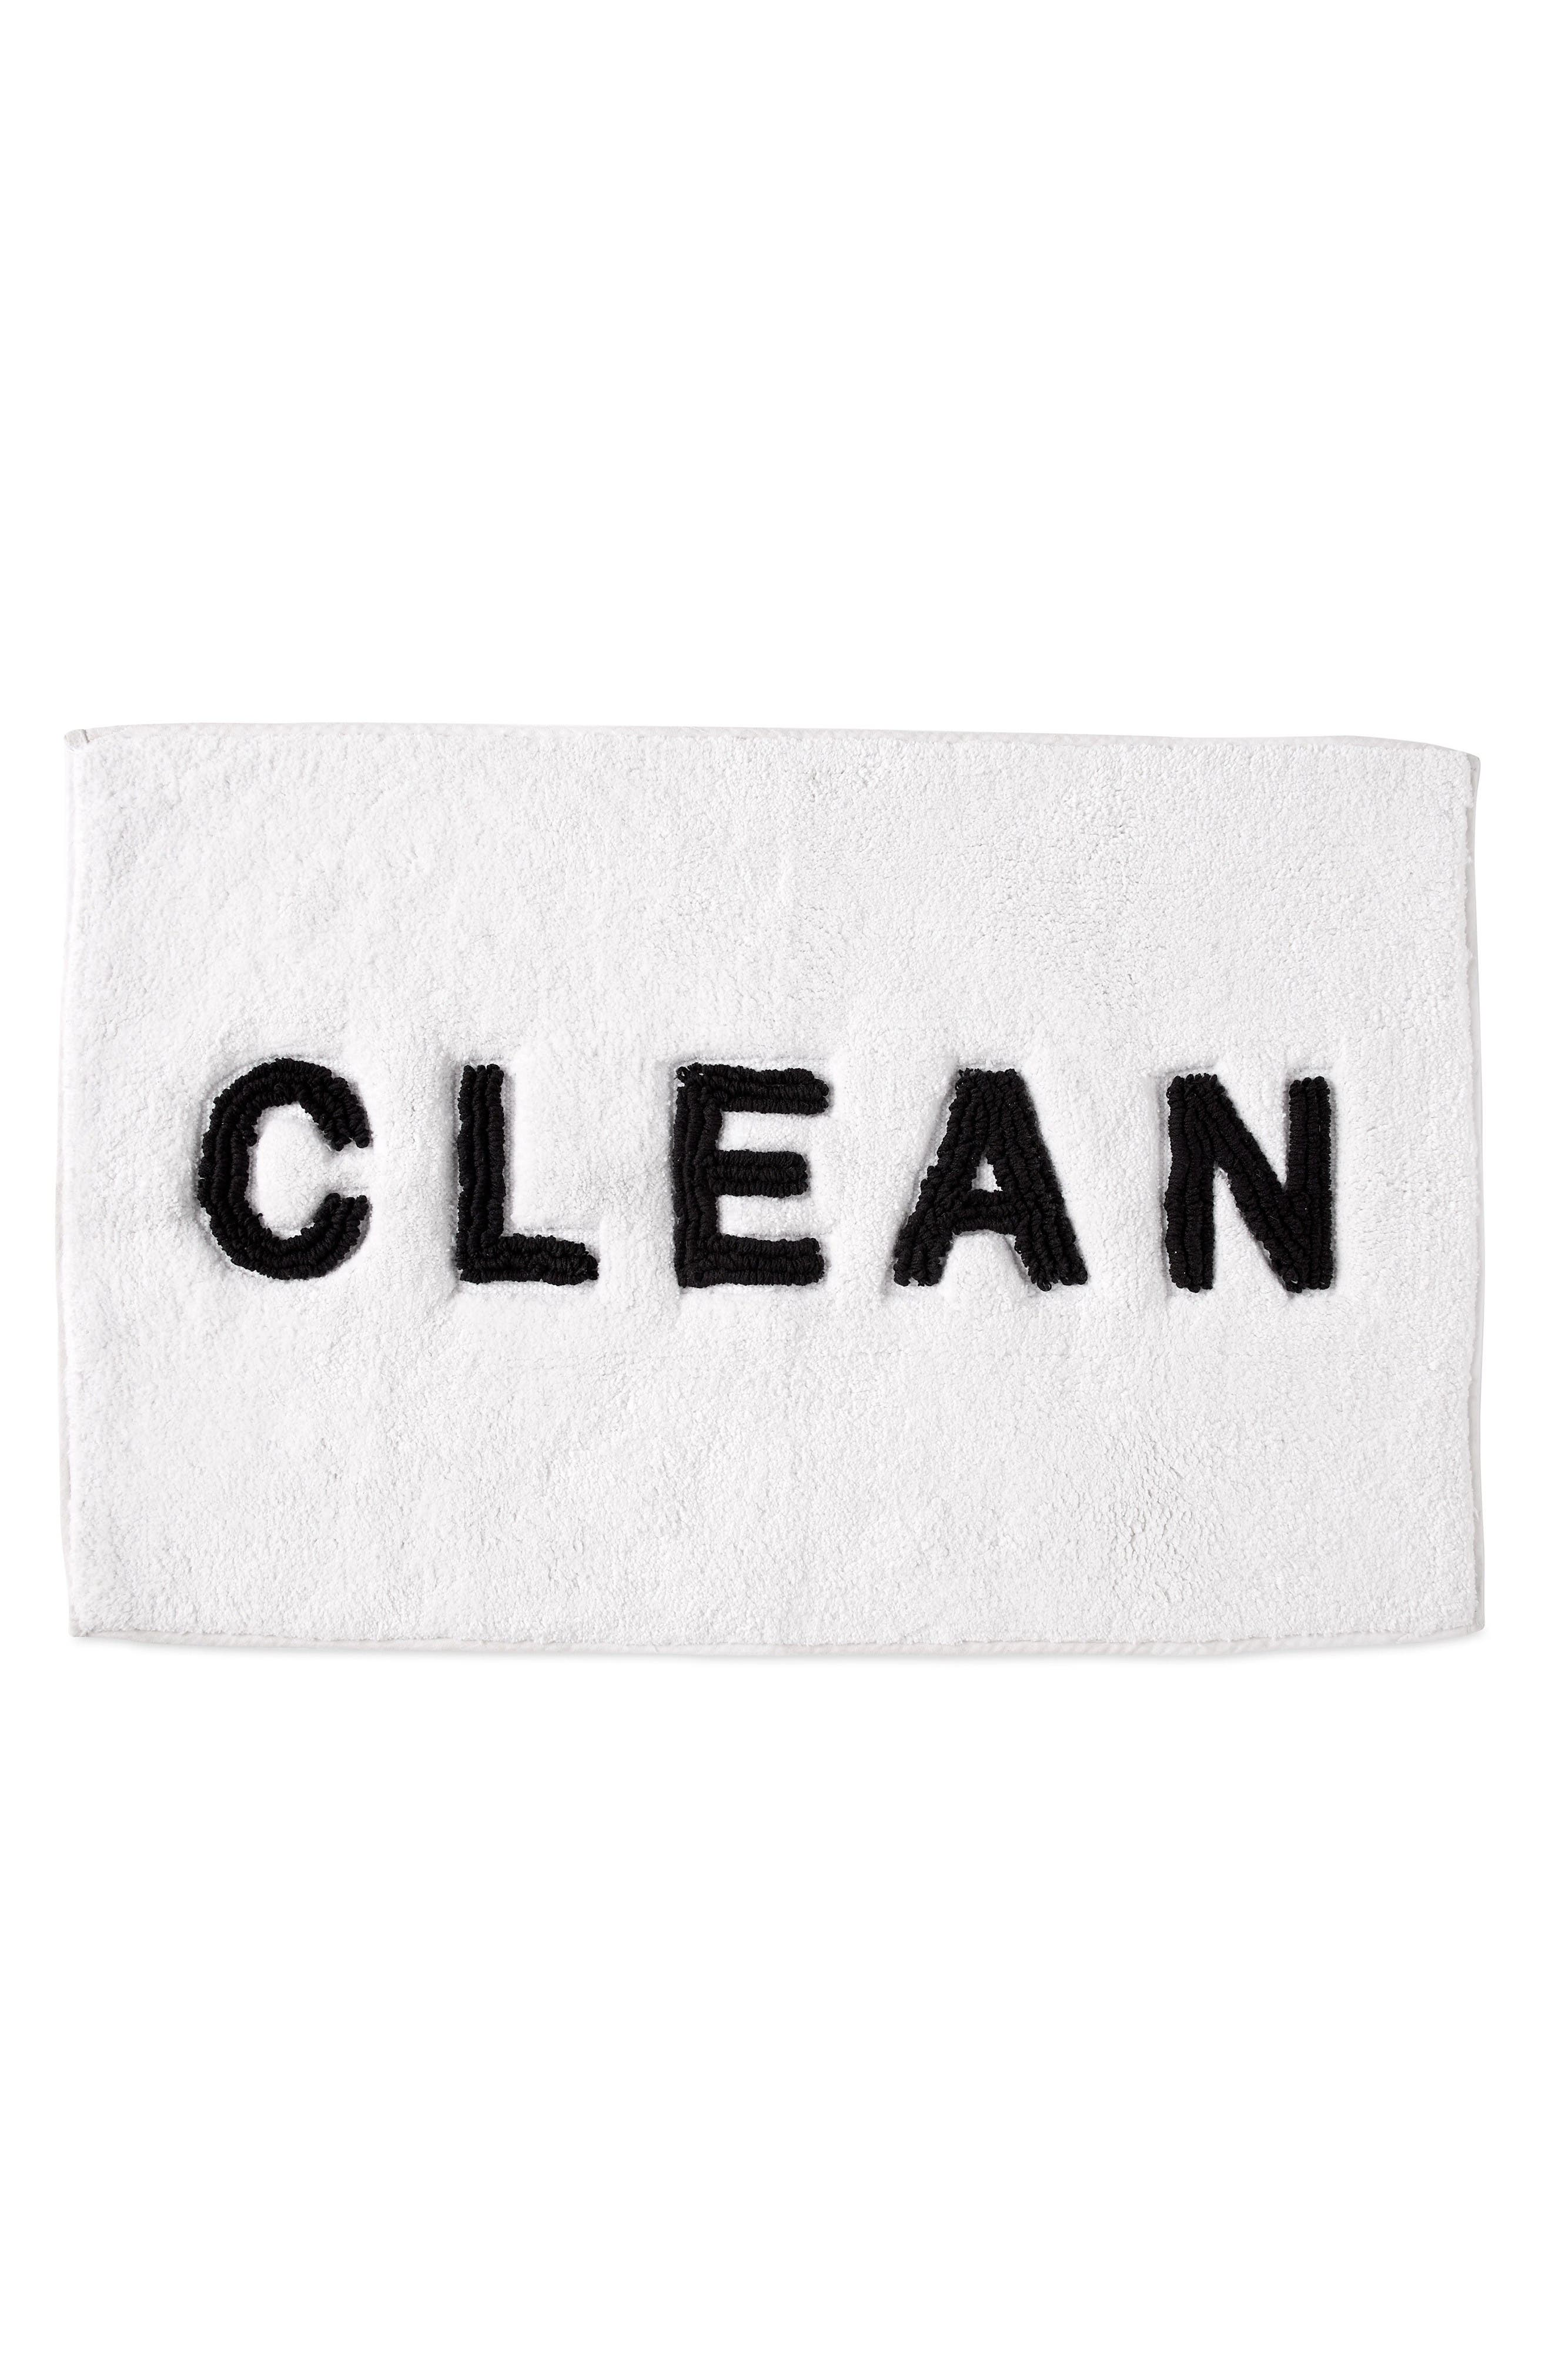 Chatter Rug,                         Main,                         color, White